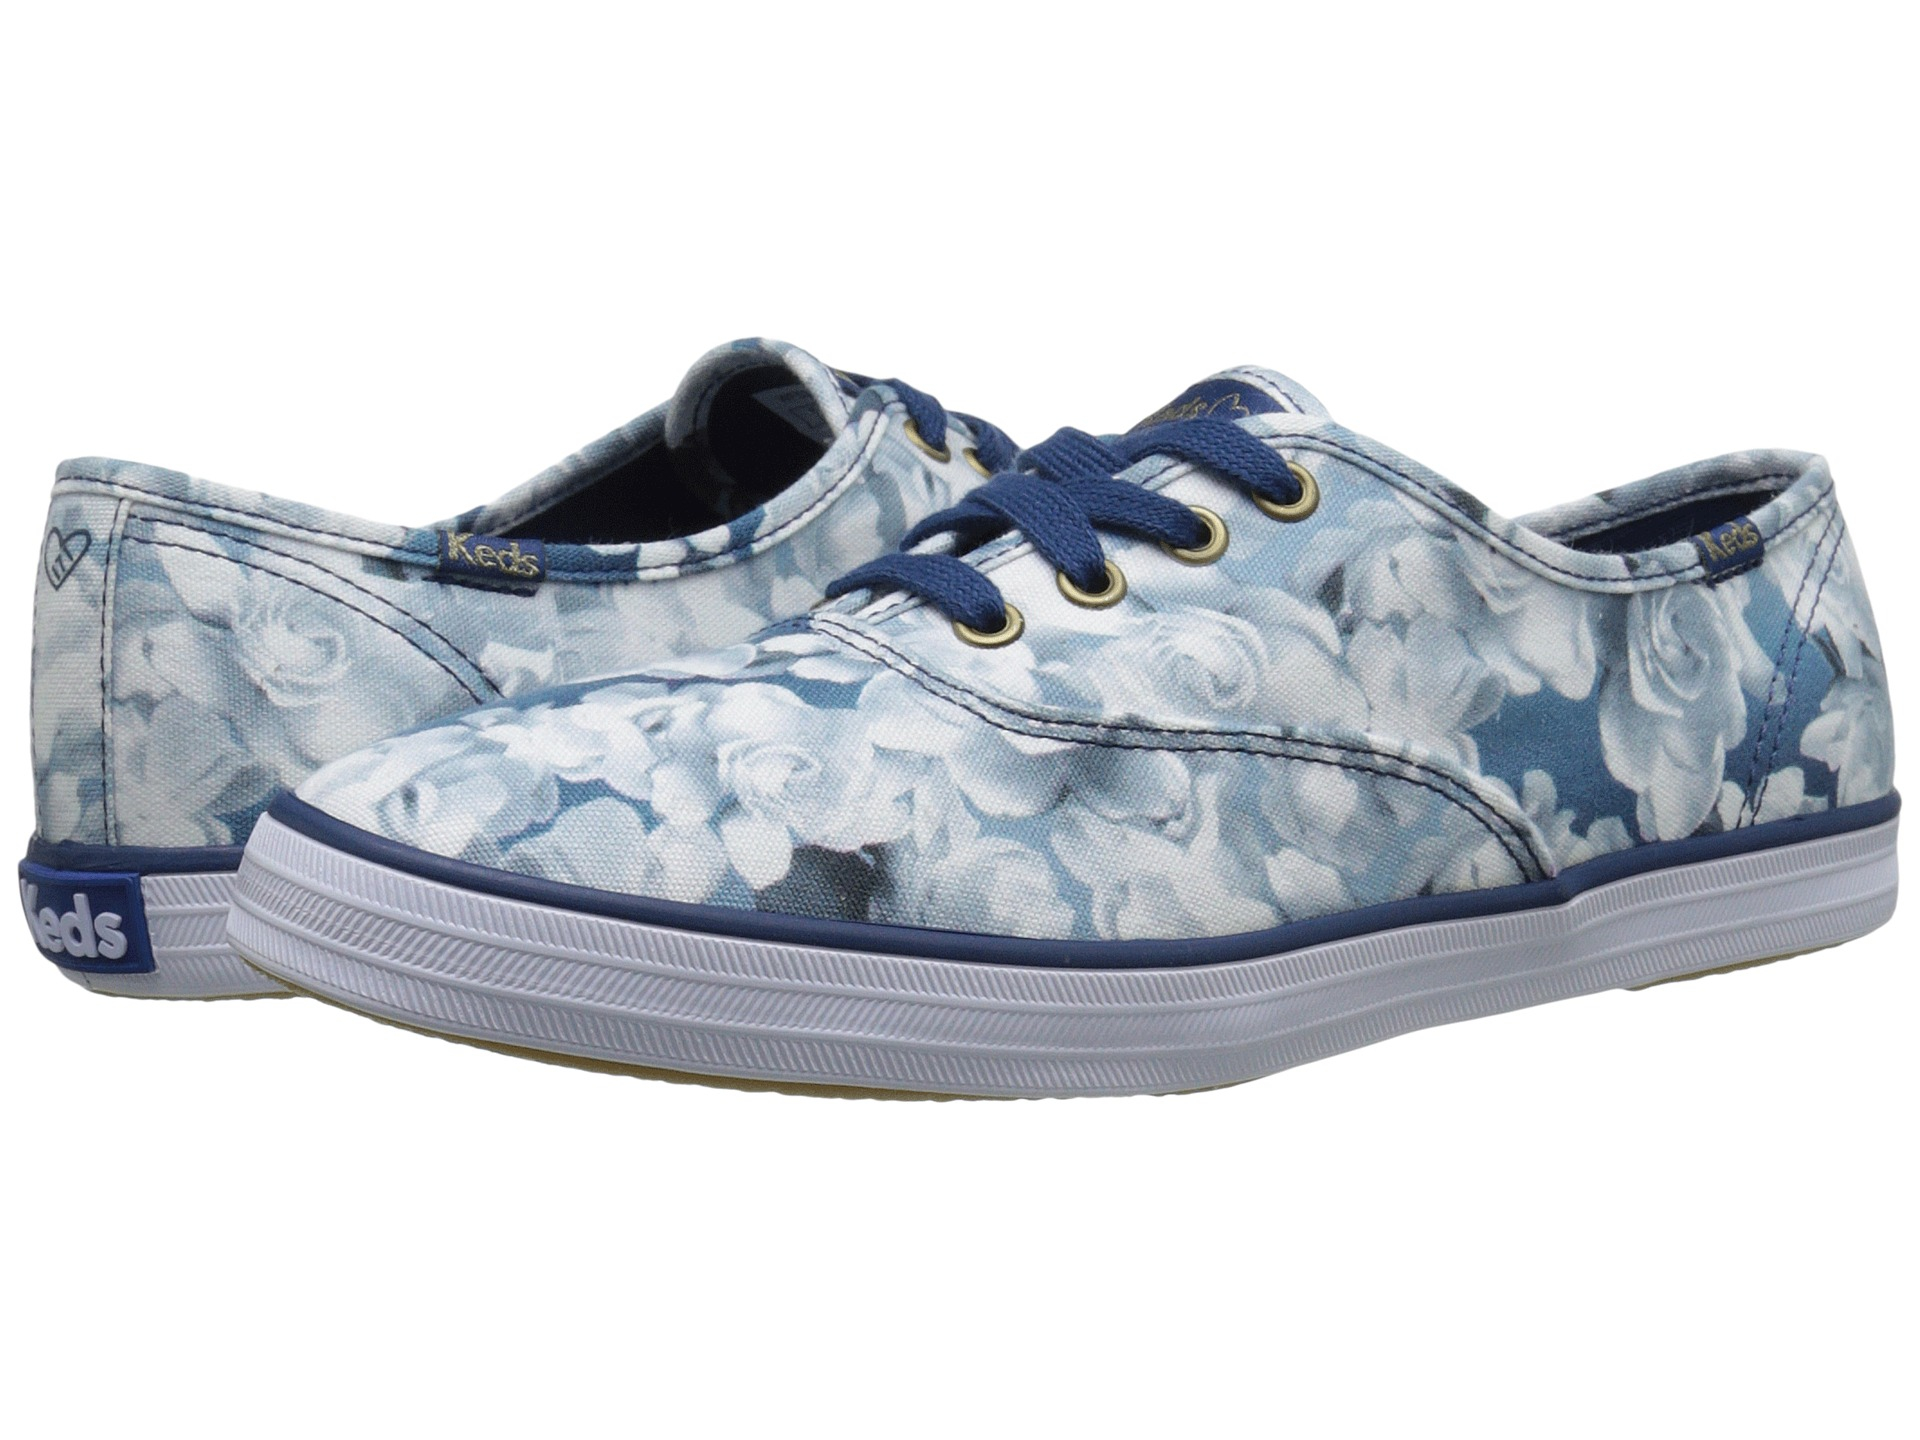 5f2d505171f Lyst - Keds Taylor Swift s Champion Floral Print in Blue